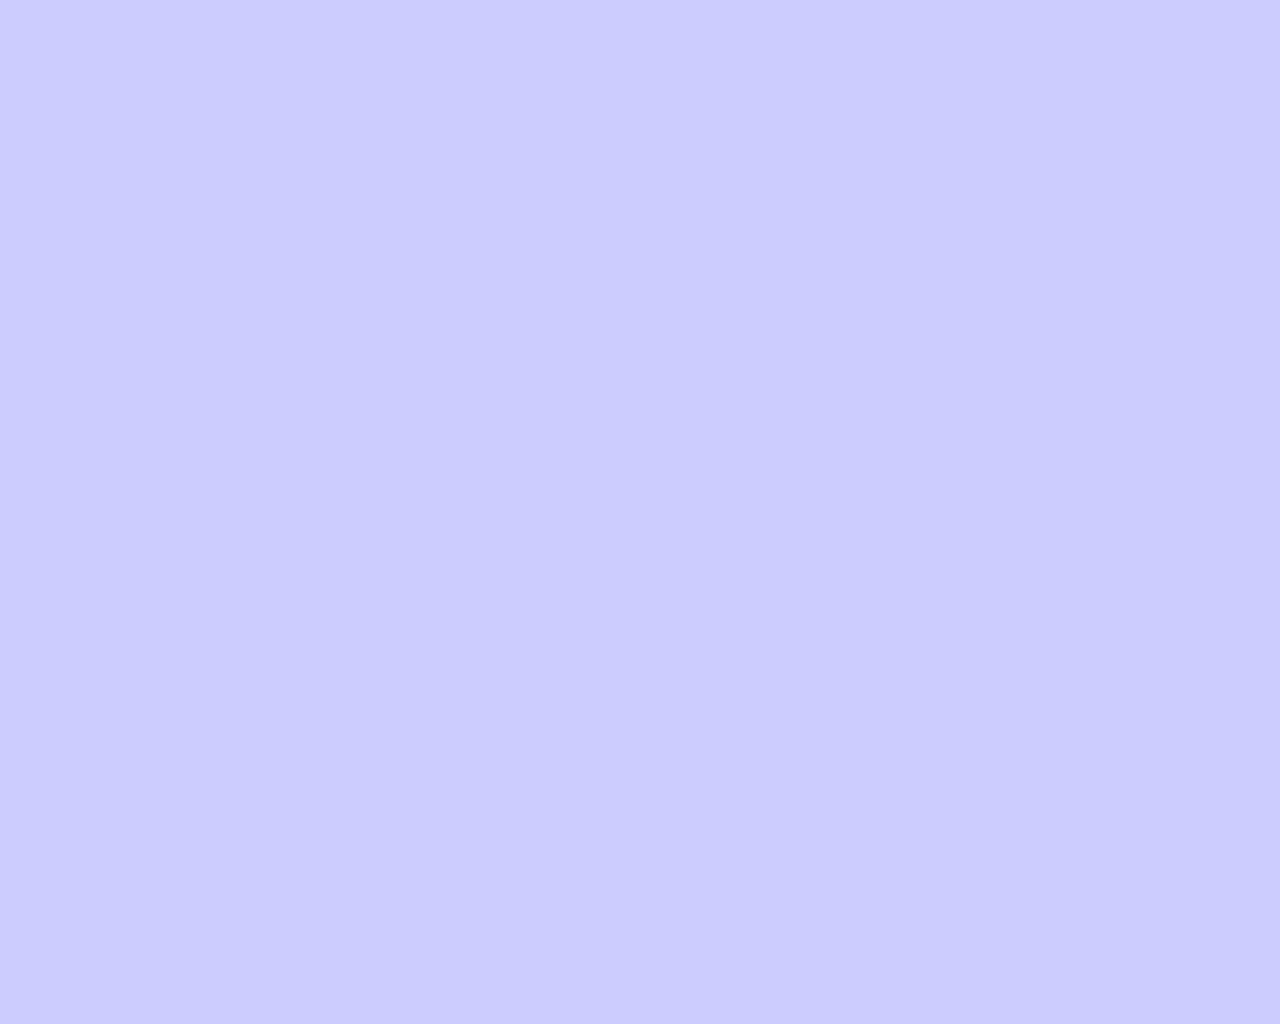 1280x1024 Periwinkle Solid Color Background